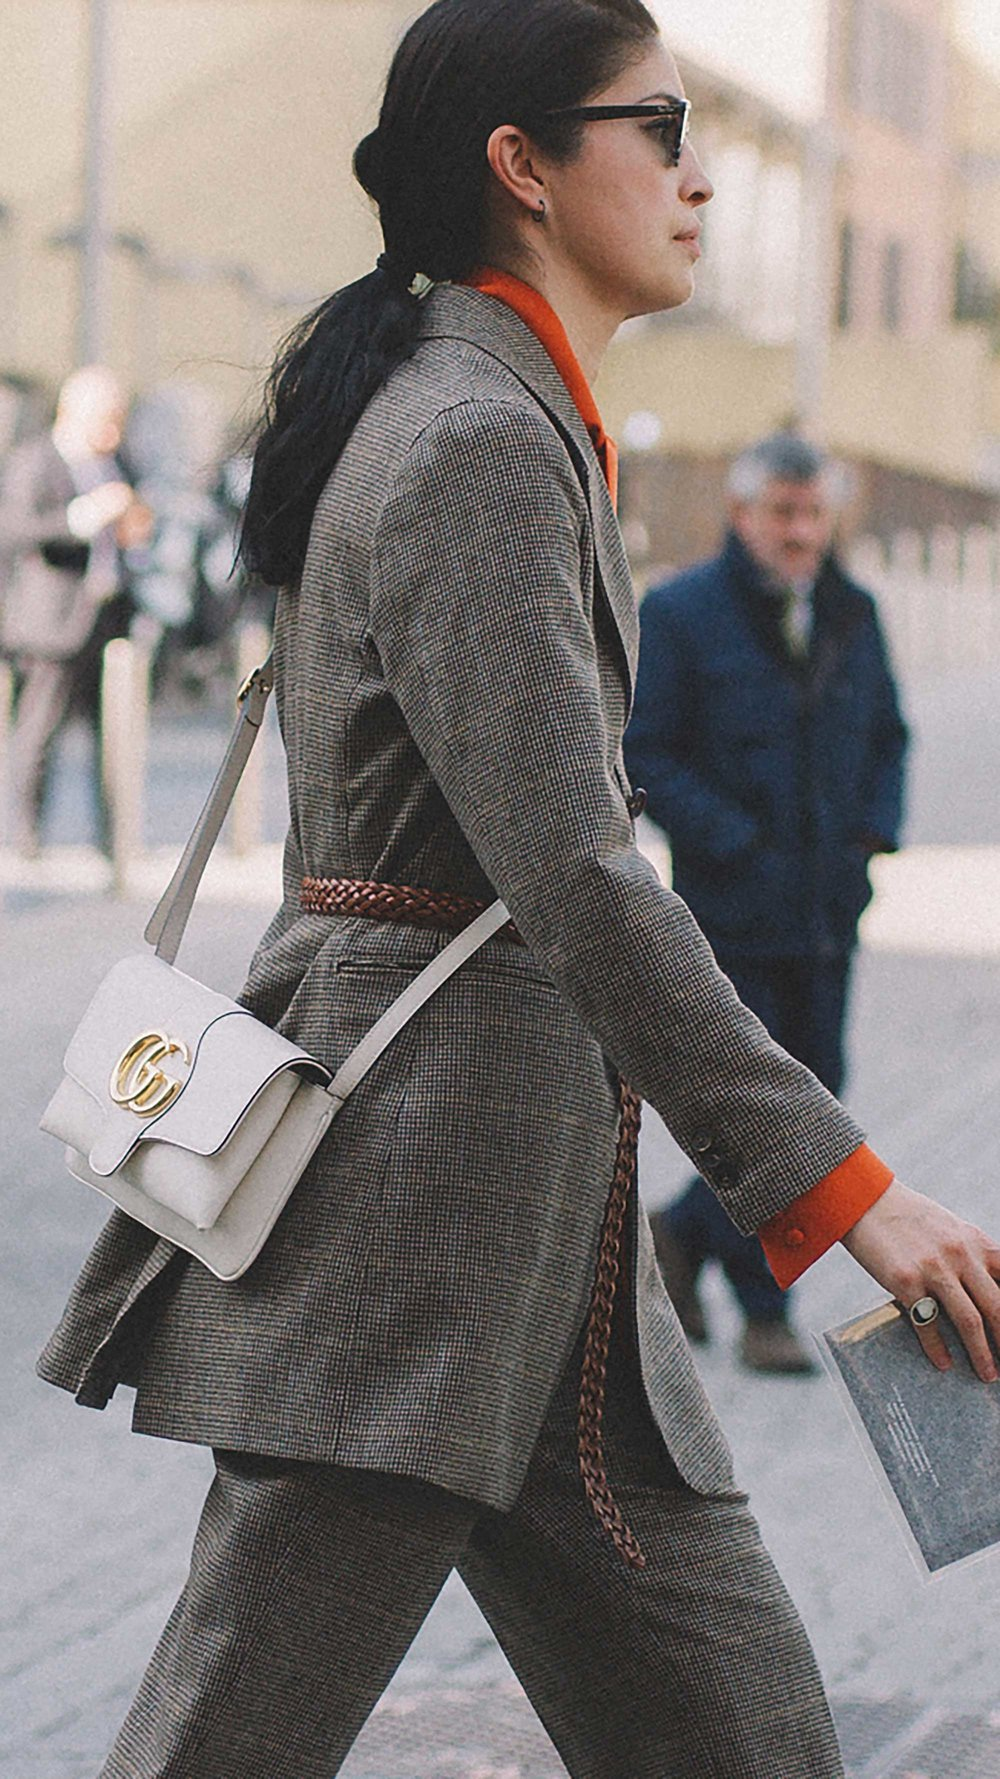 est outfits of Milan Fashion Week street style day two MFW FW19 48.jpg